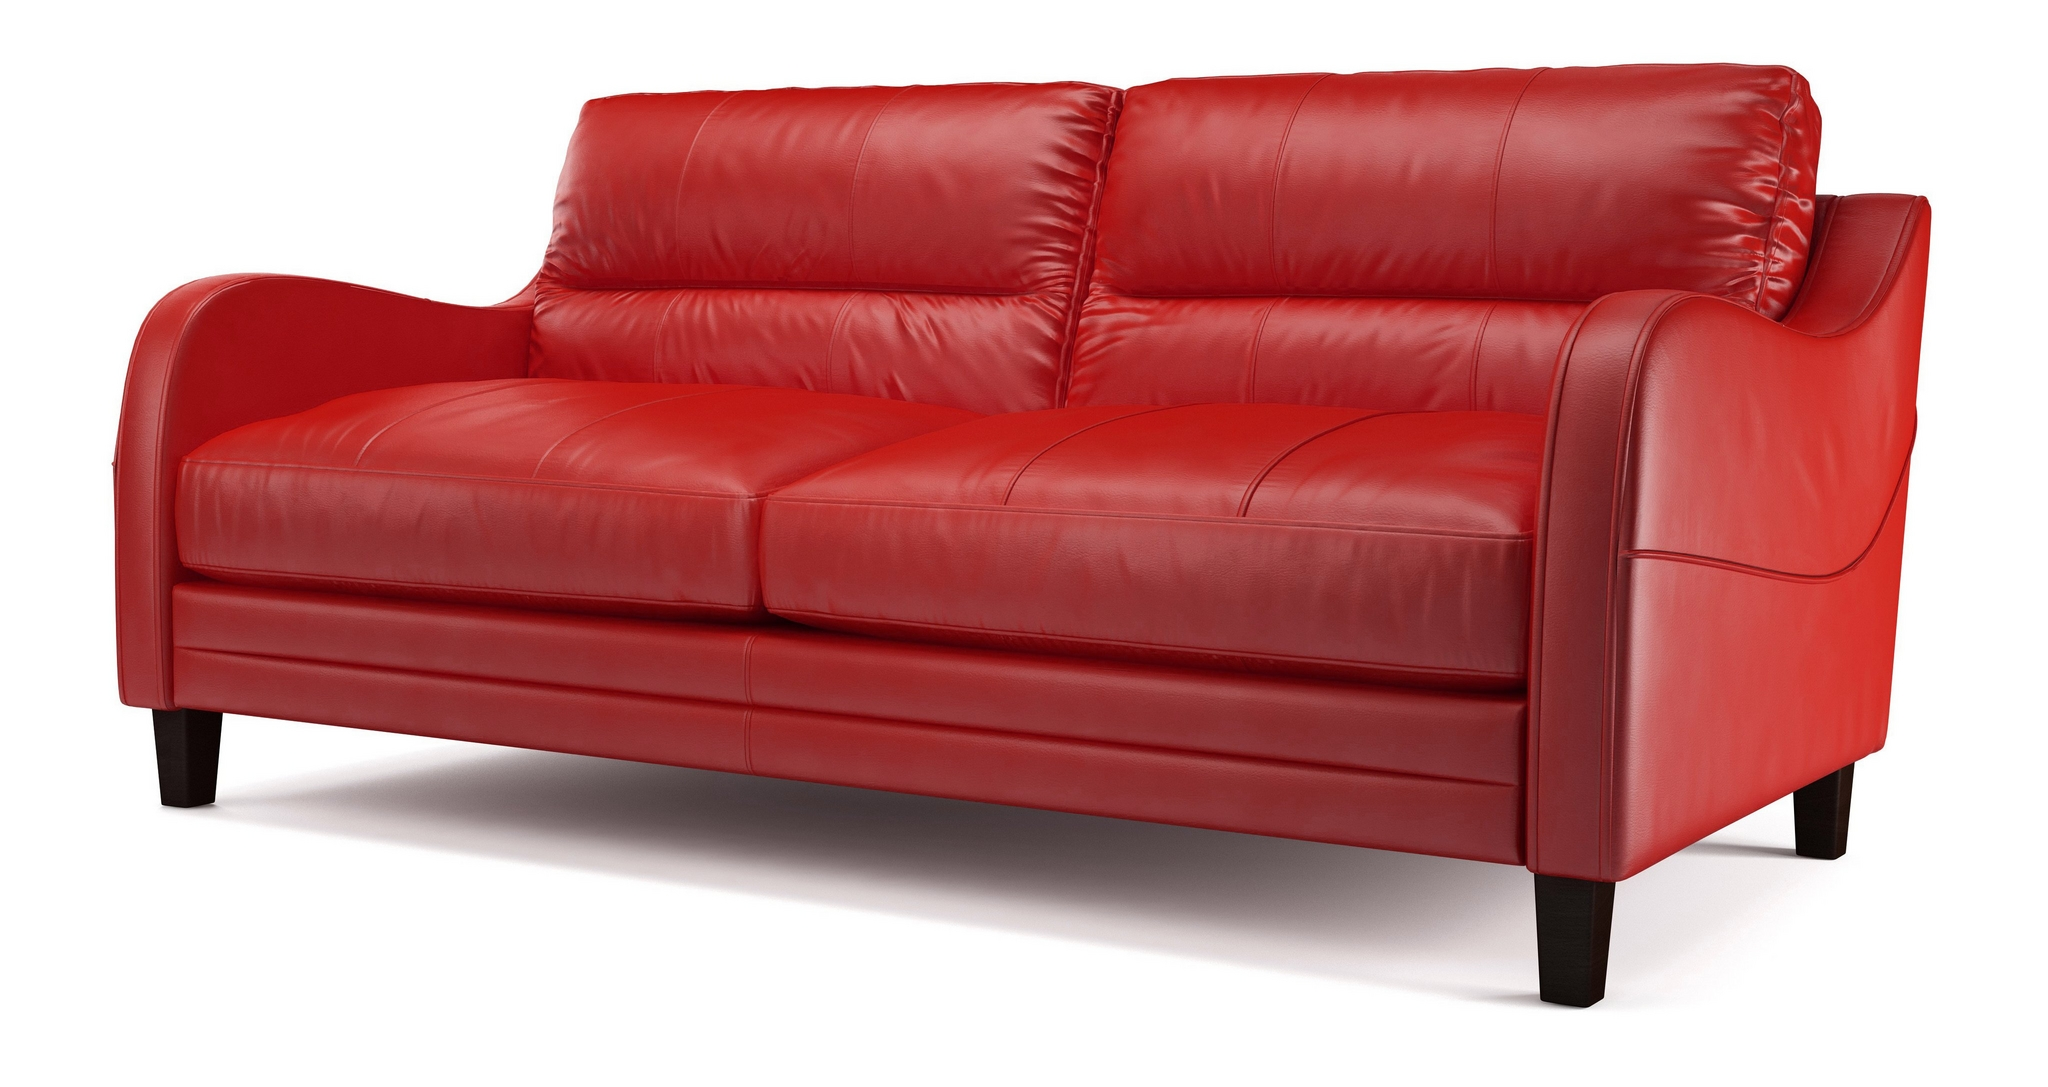 ENZO RED SUITE ITALIAN LEATHER SETTEE 3 SEATER LEATHER SOFA EBay